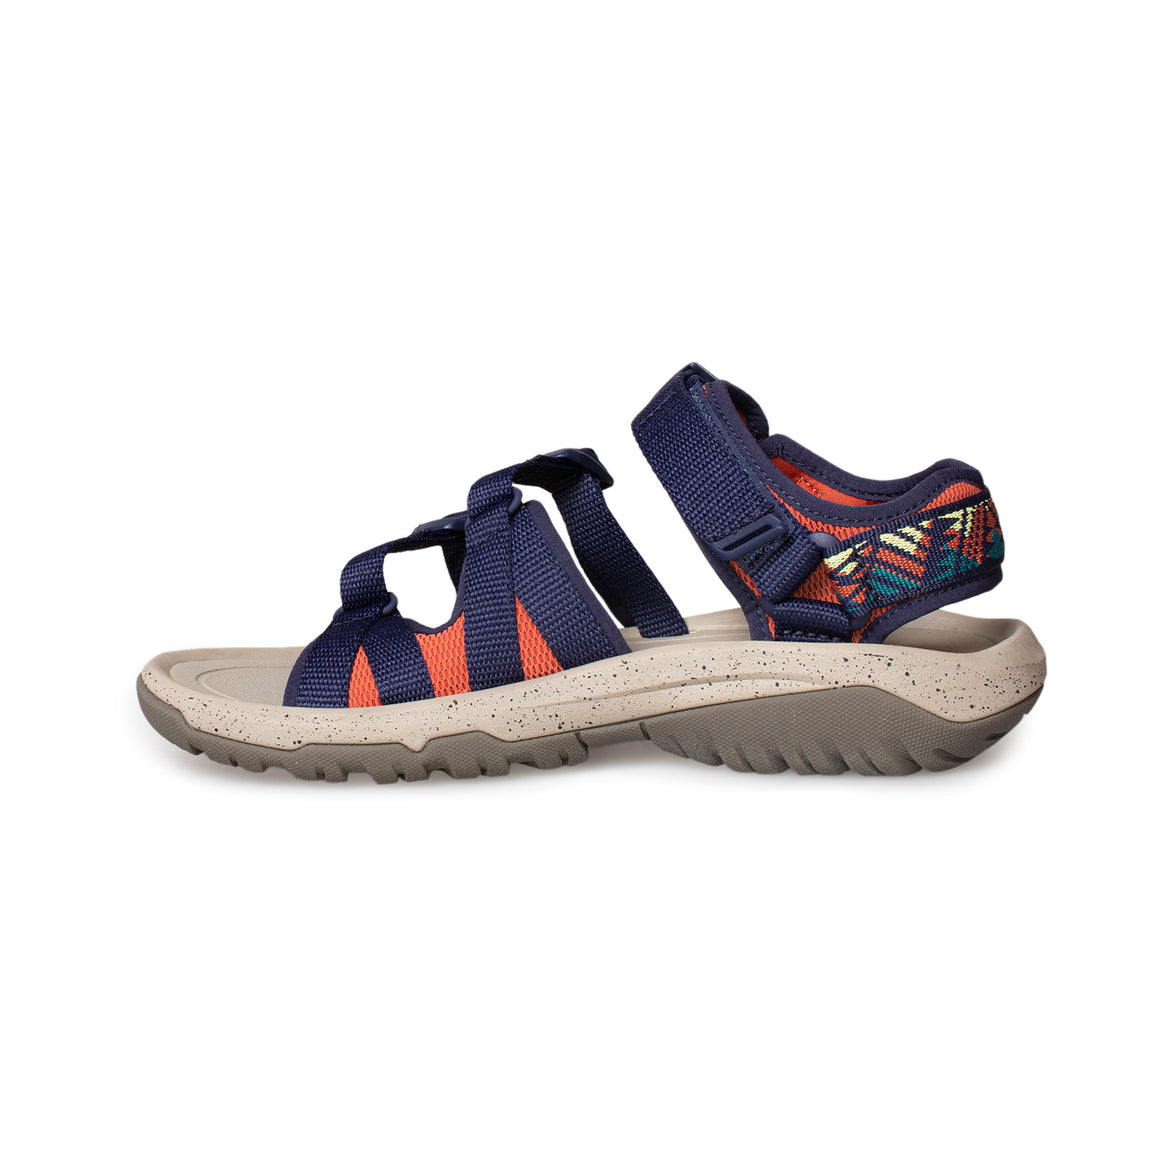 TEVA Hurricane XLT 2 ALP GC100 Eclipse Sandals - Women's